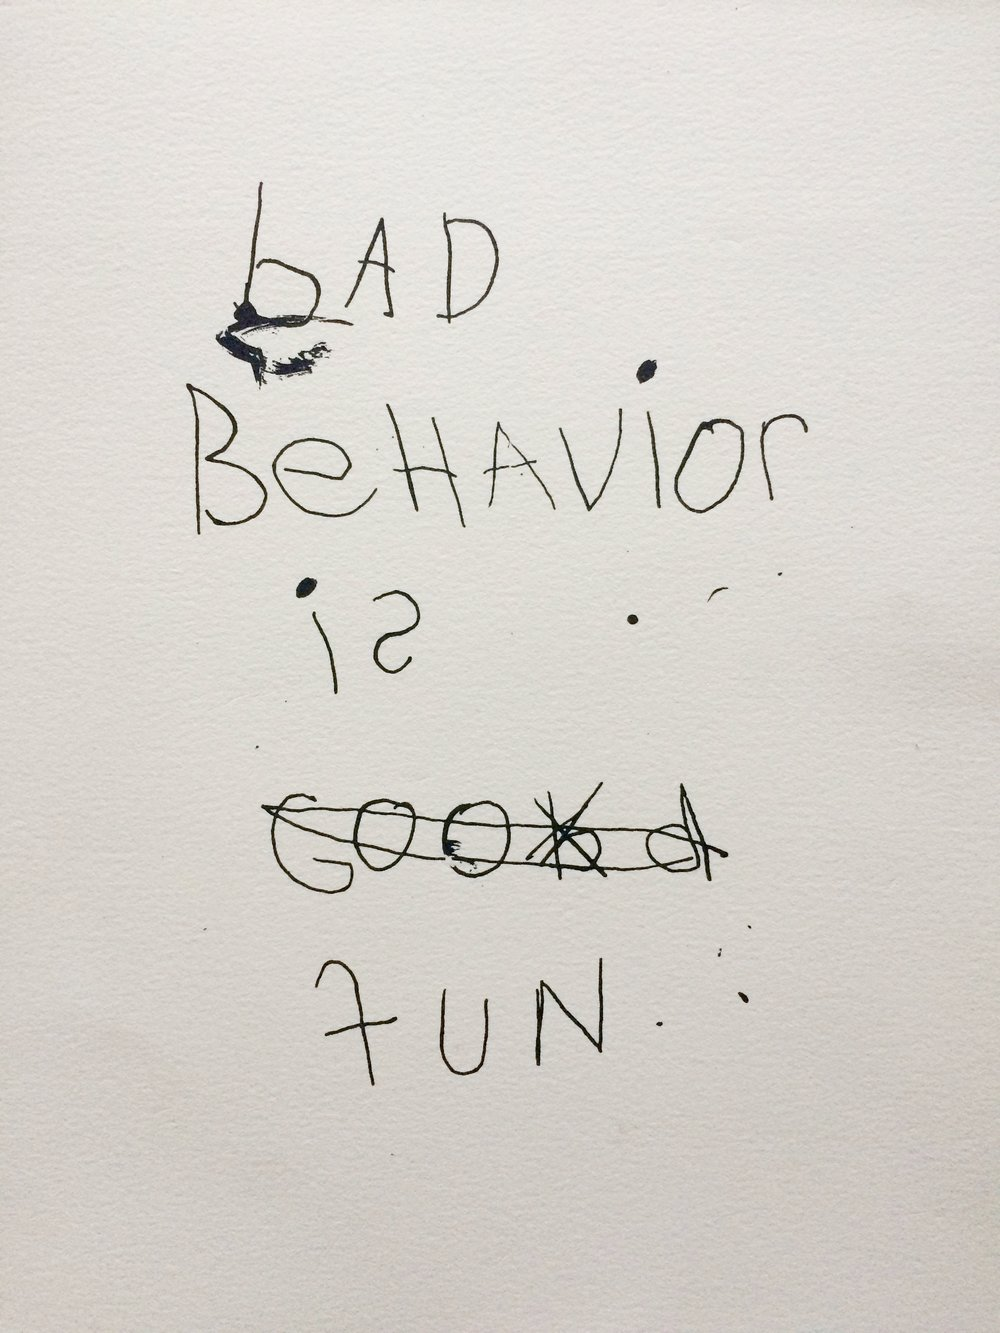 bad behavior is fun